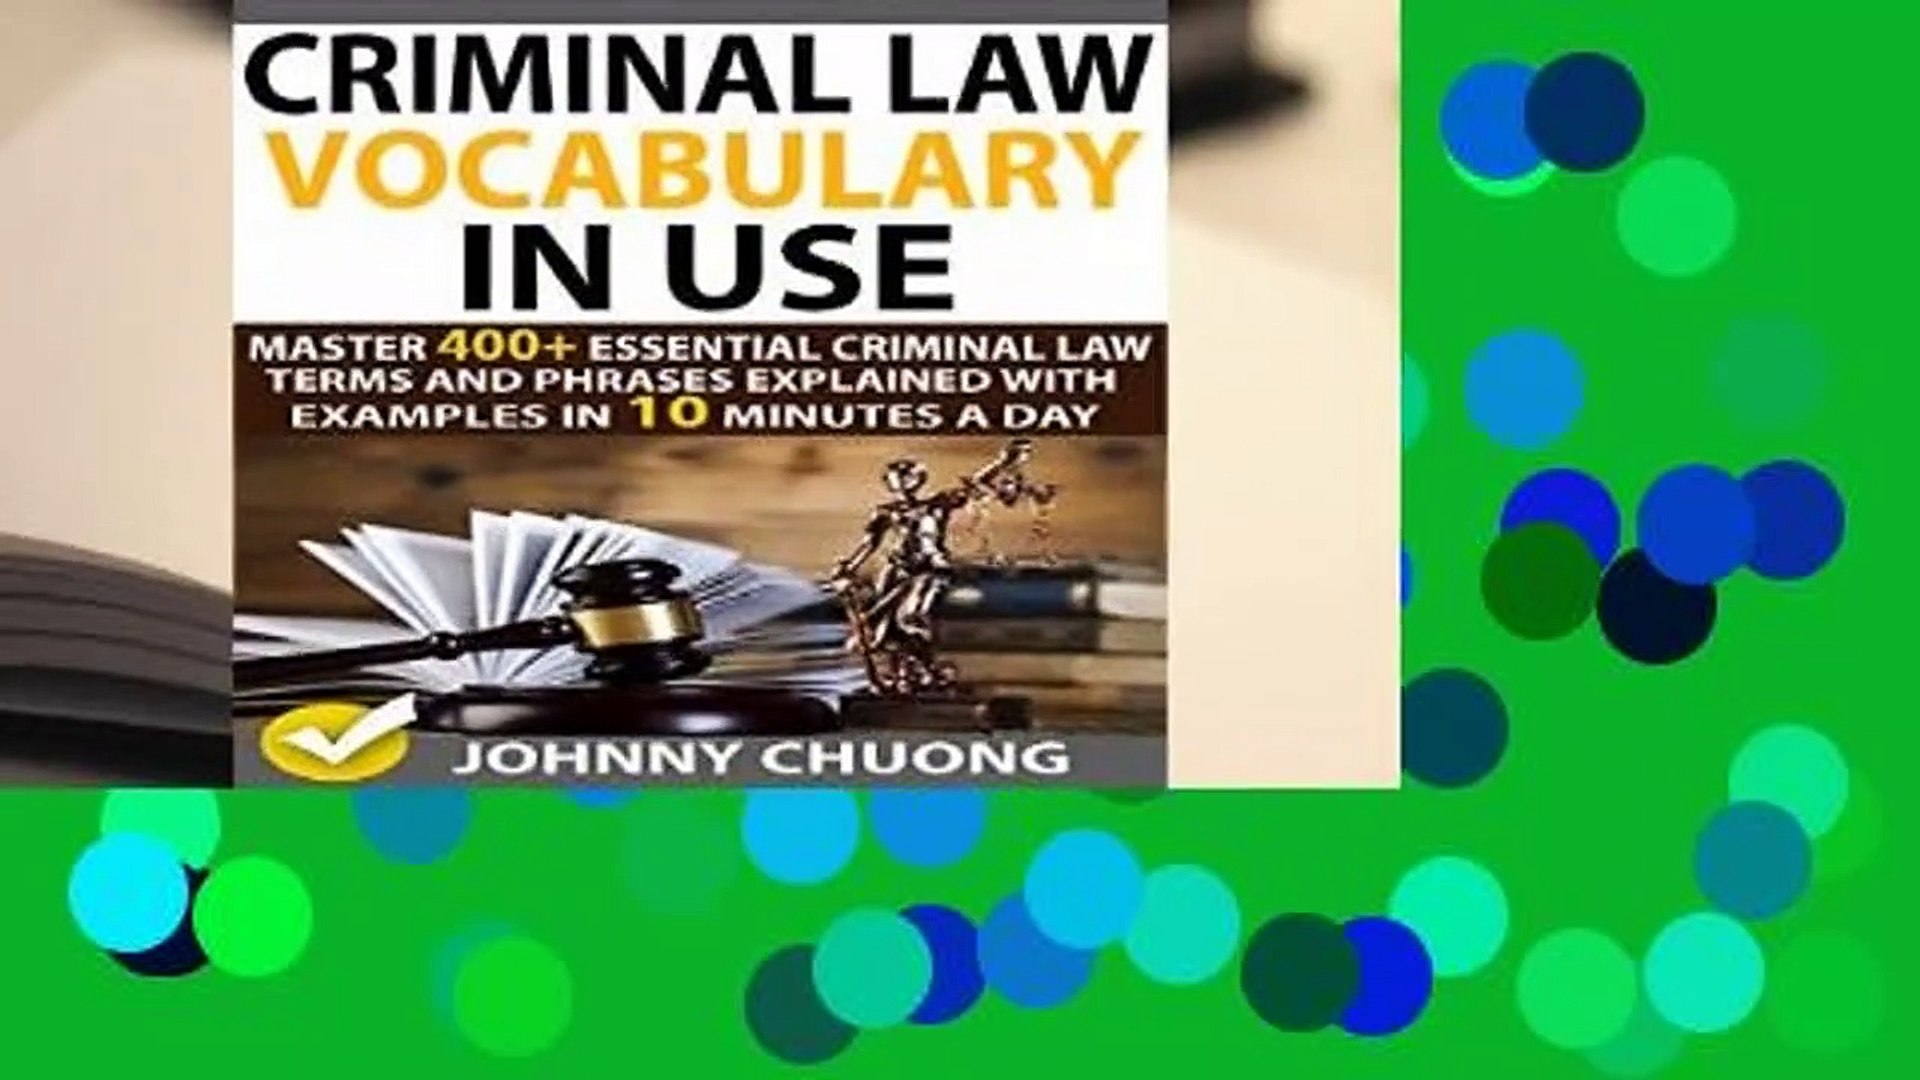 Criminal Law Vocabulary In Use Master 400 Essential Criminal Law Terms And Phrases Explained With Examples In 10 Minutes A Day